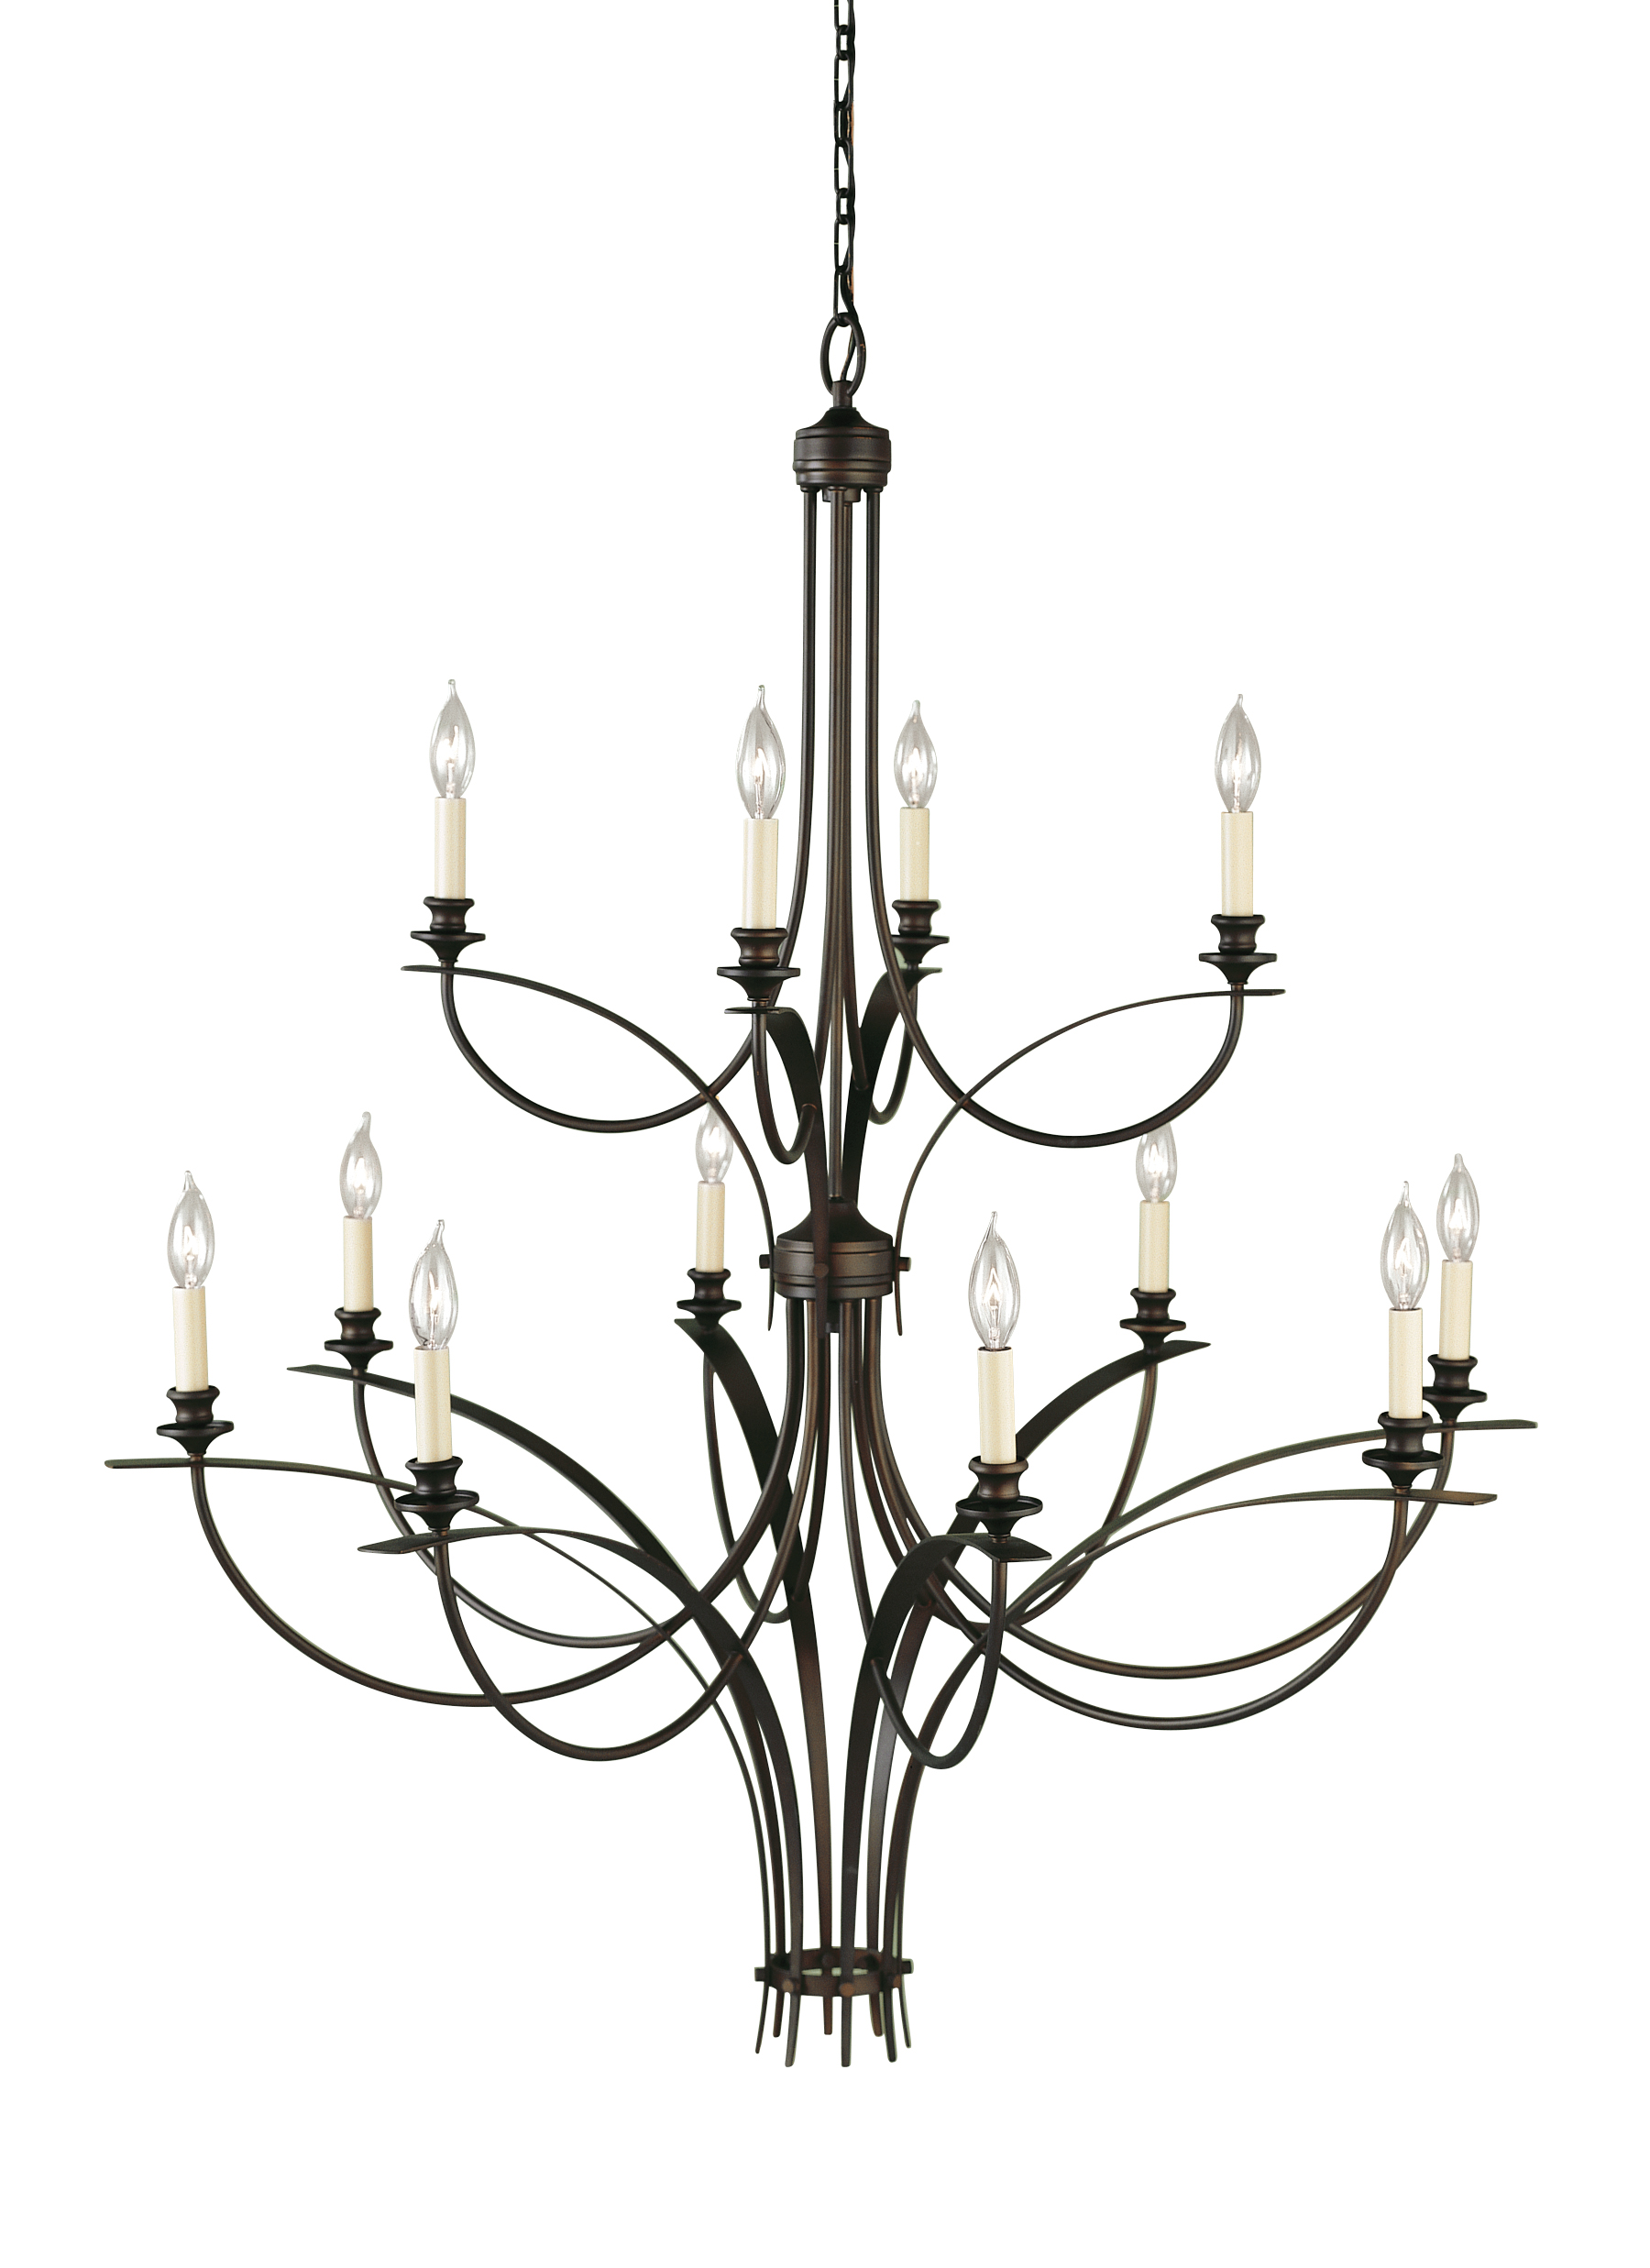 F1891 8 4ORB 12 Light Multi Tier Chandelier Oil Rubbed Bronze